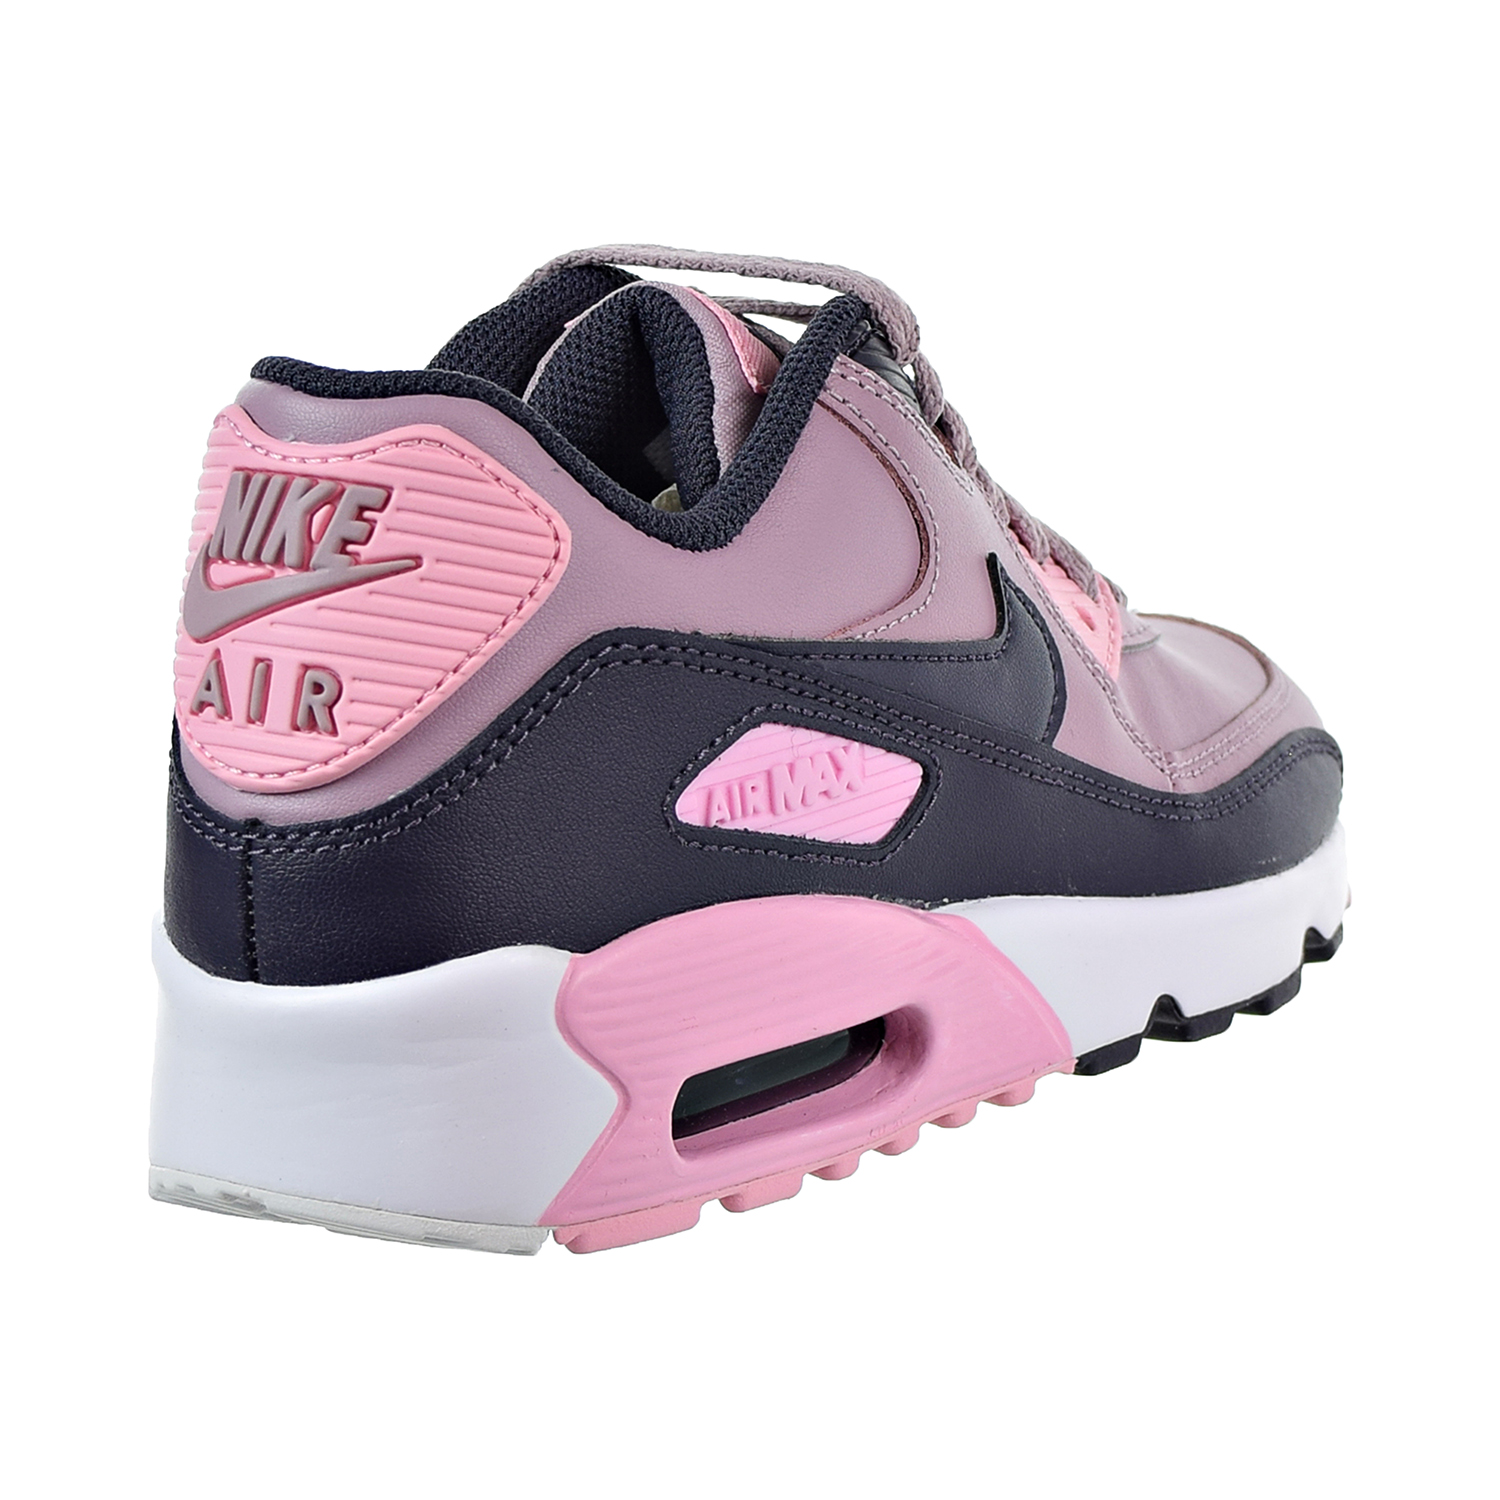 the latest 8c068 b8643 Nike Air Max 90 Leather Big Kids  Shoes Elemental Rose Gridiron Pink White  833376-602